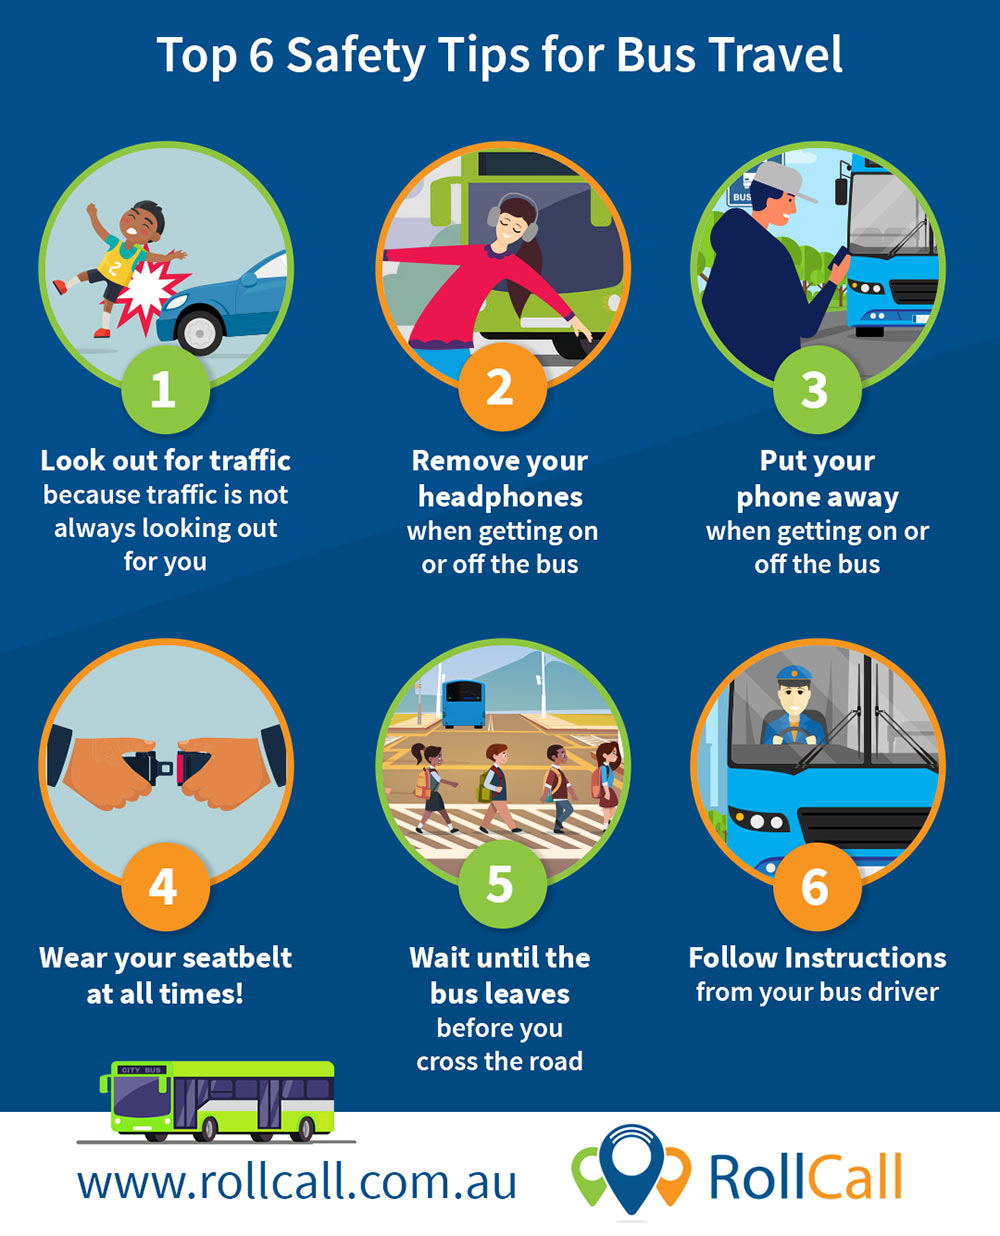 rollcall-top-6-safety-tips-for-bus-travel